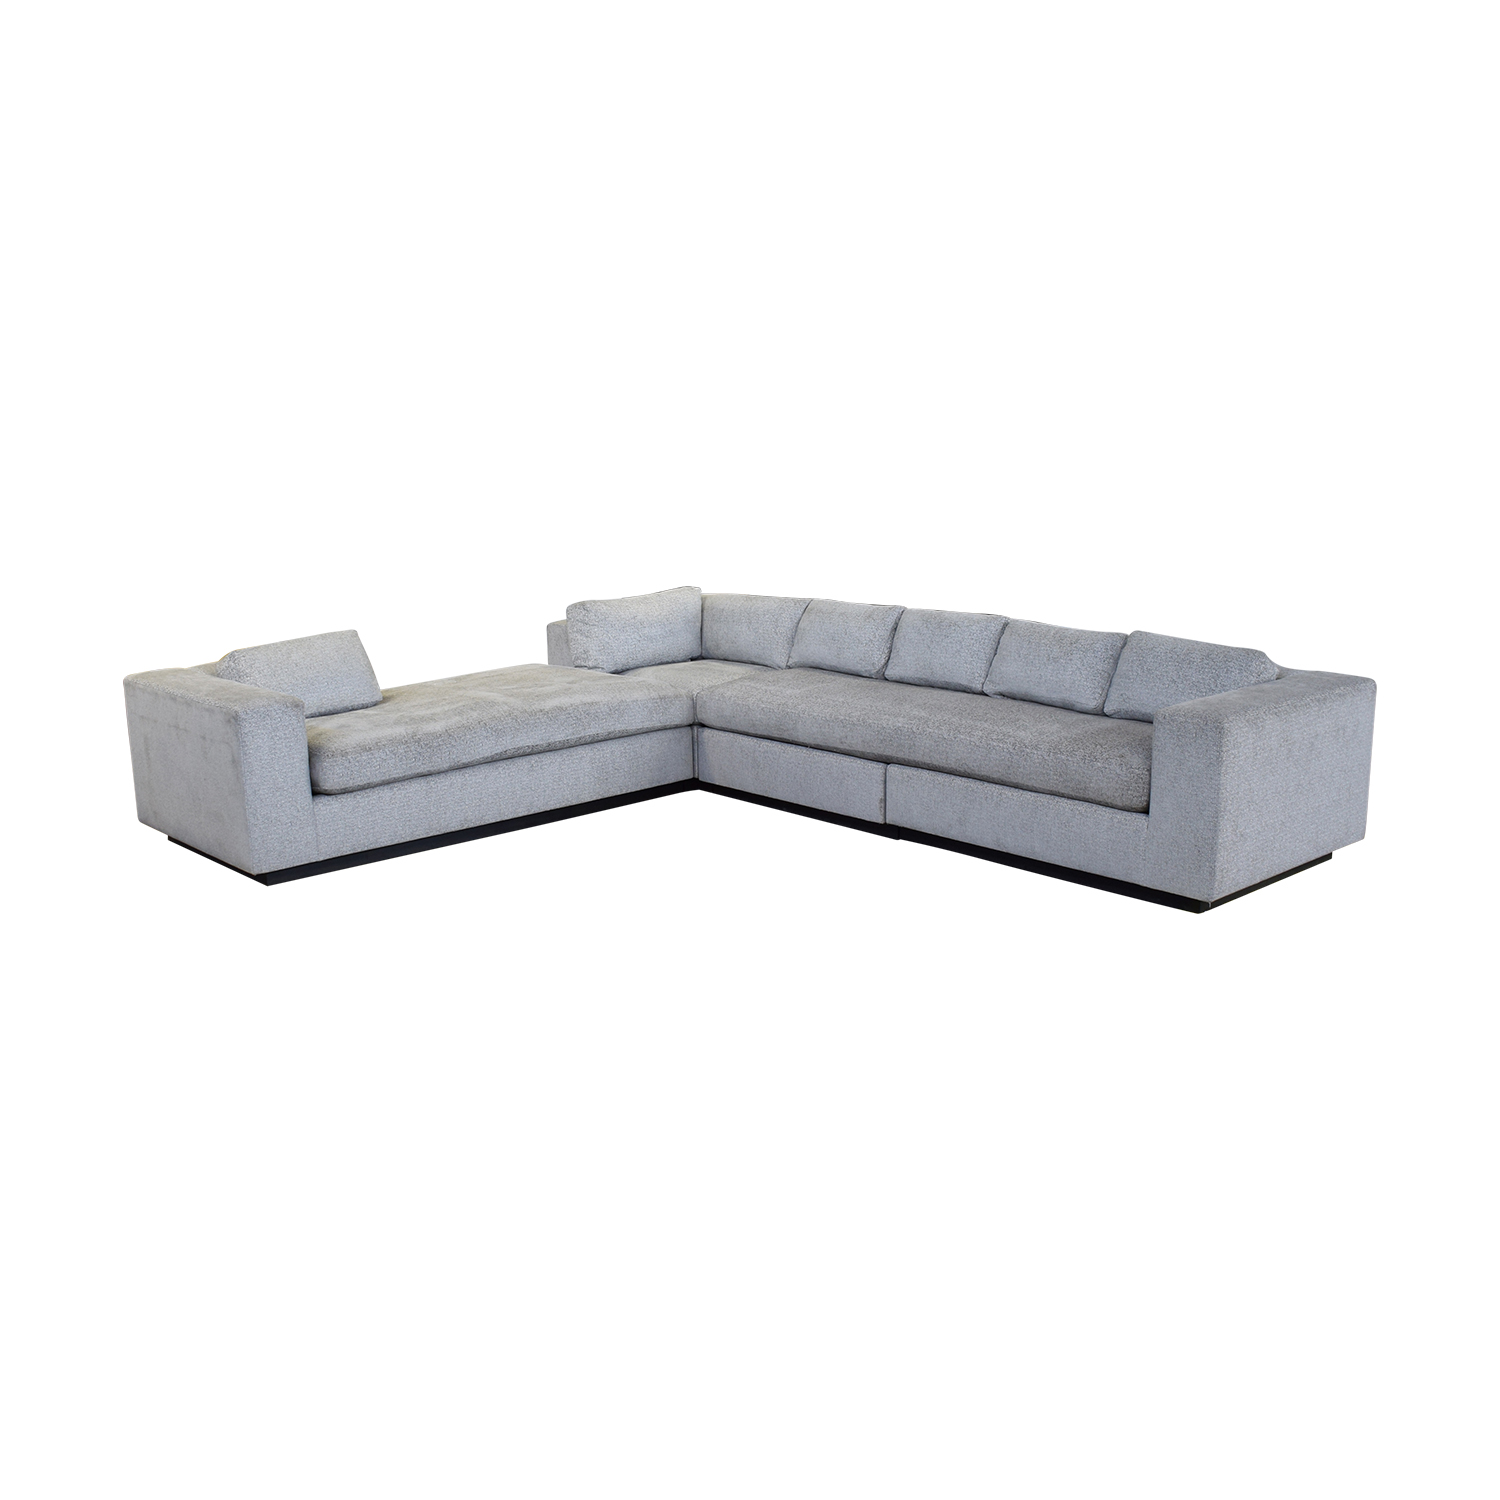 Groovy 83 Off Ferrell Mittman Ferrell Mittman Cooper Sectional Sofa With Reverse Chaise Sofas Gmtry Best Dining Table And Chair Ideas Images Gmtryco